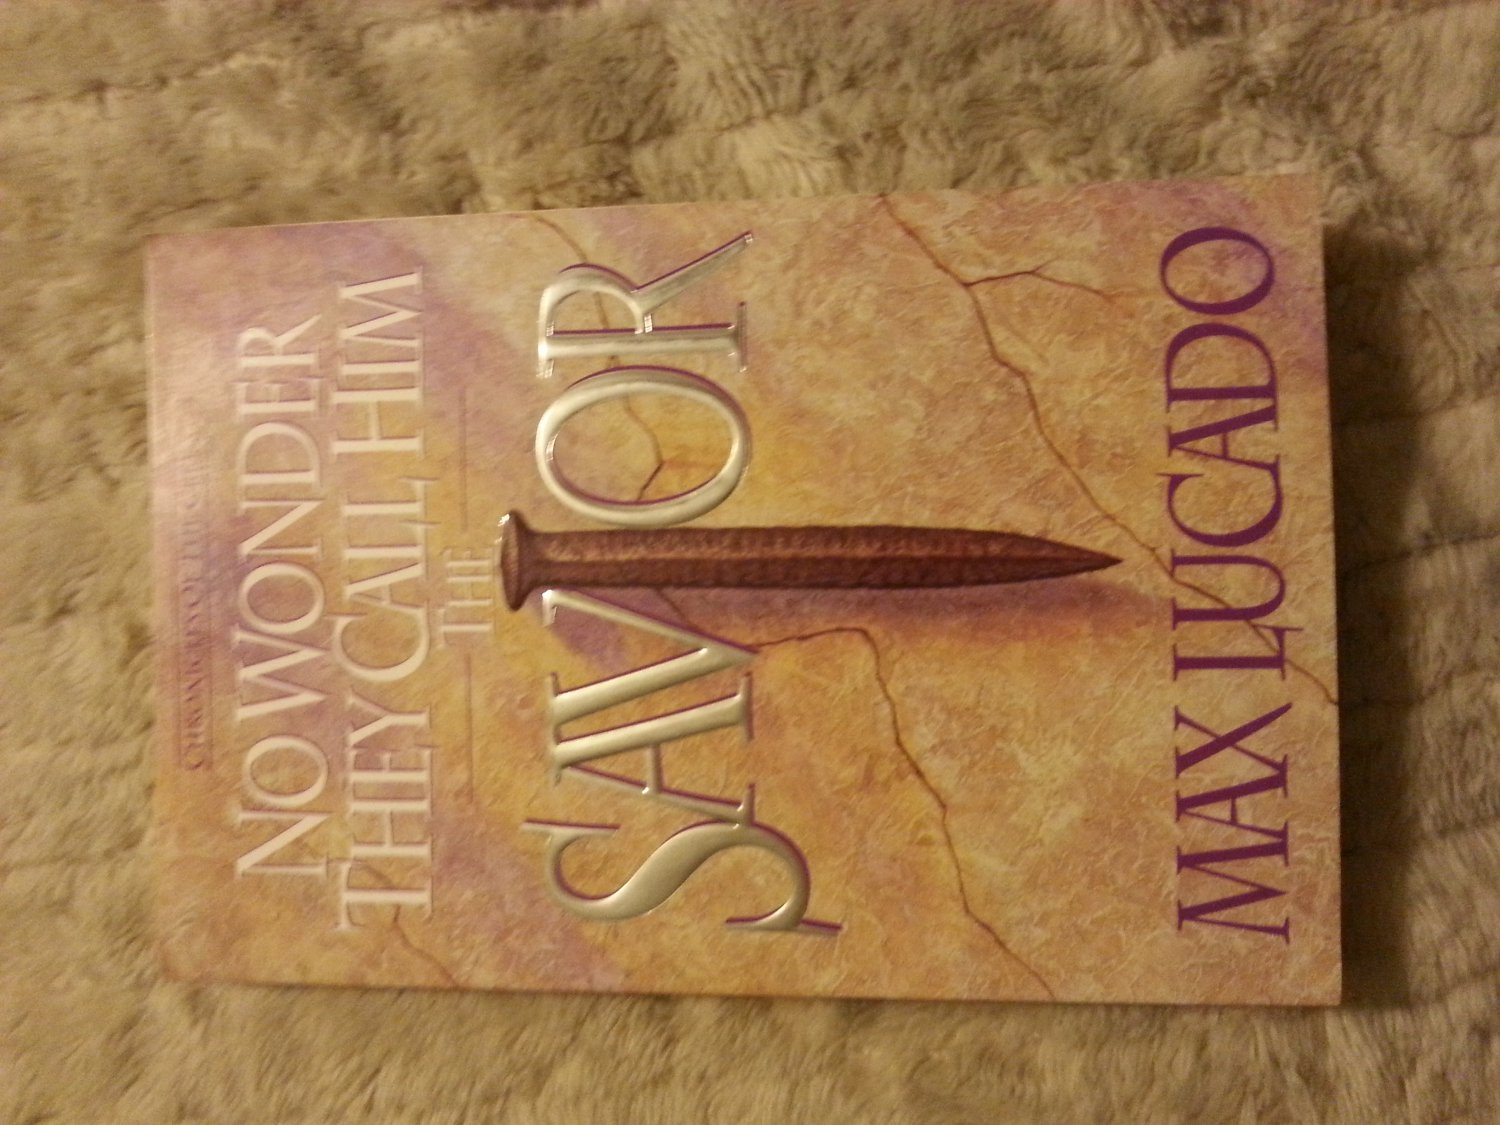 No Wonder They Call Him the Savior - Chronicles of the Cross - Max Lucado Paperback ISBN 0880705760